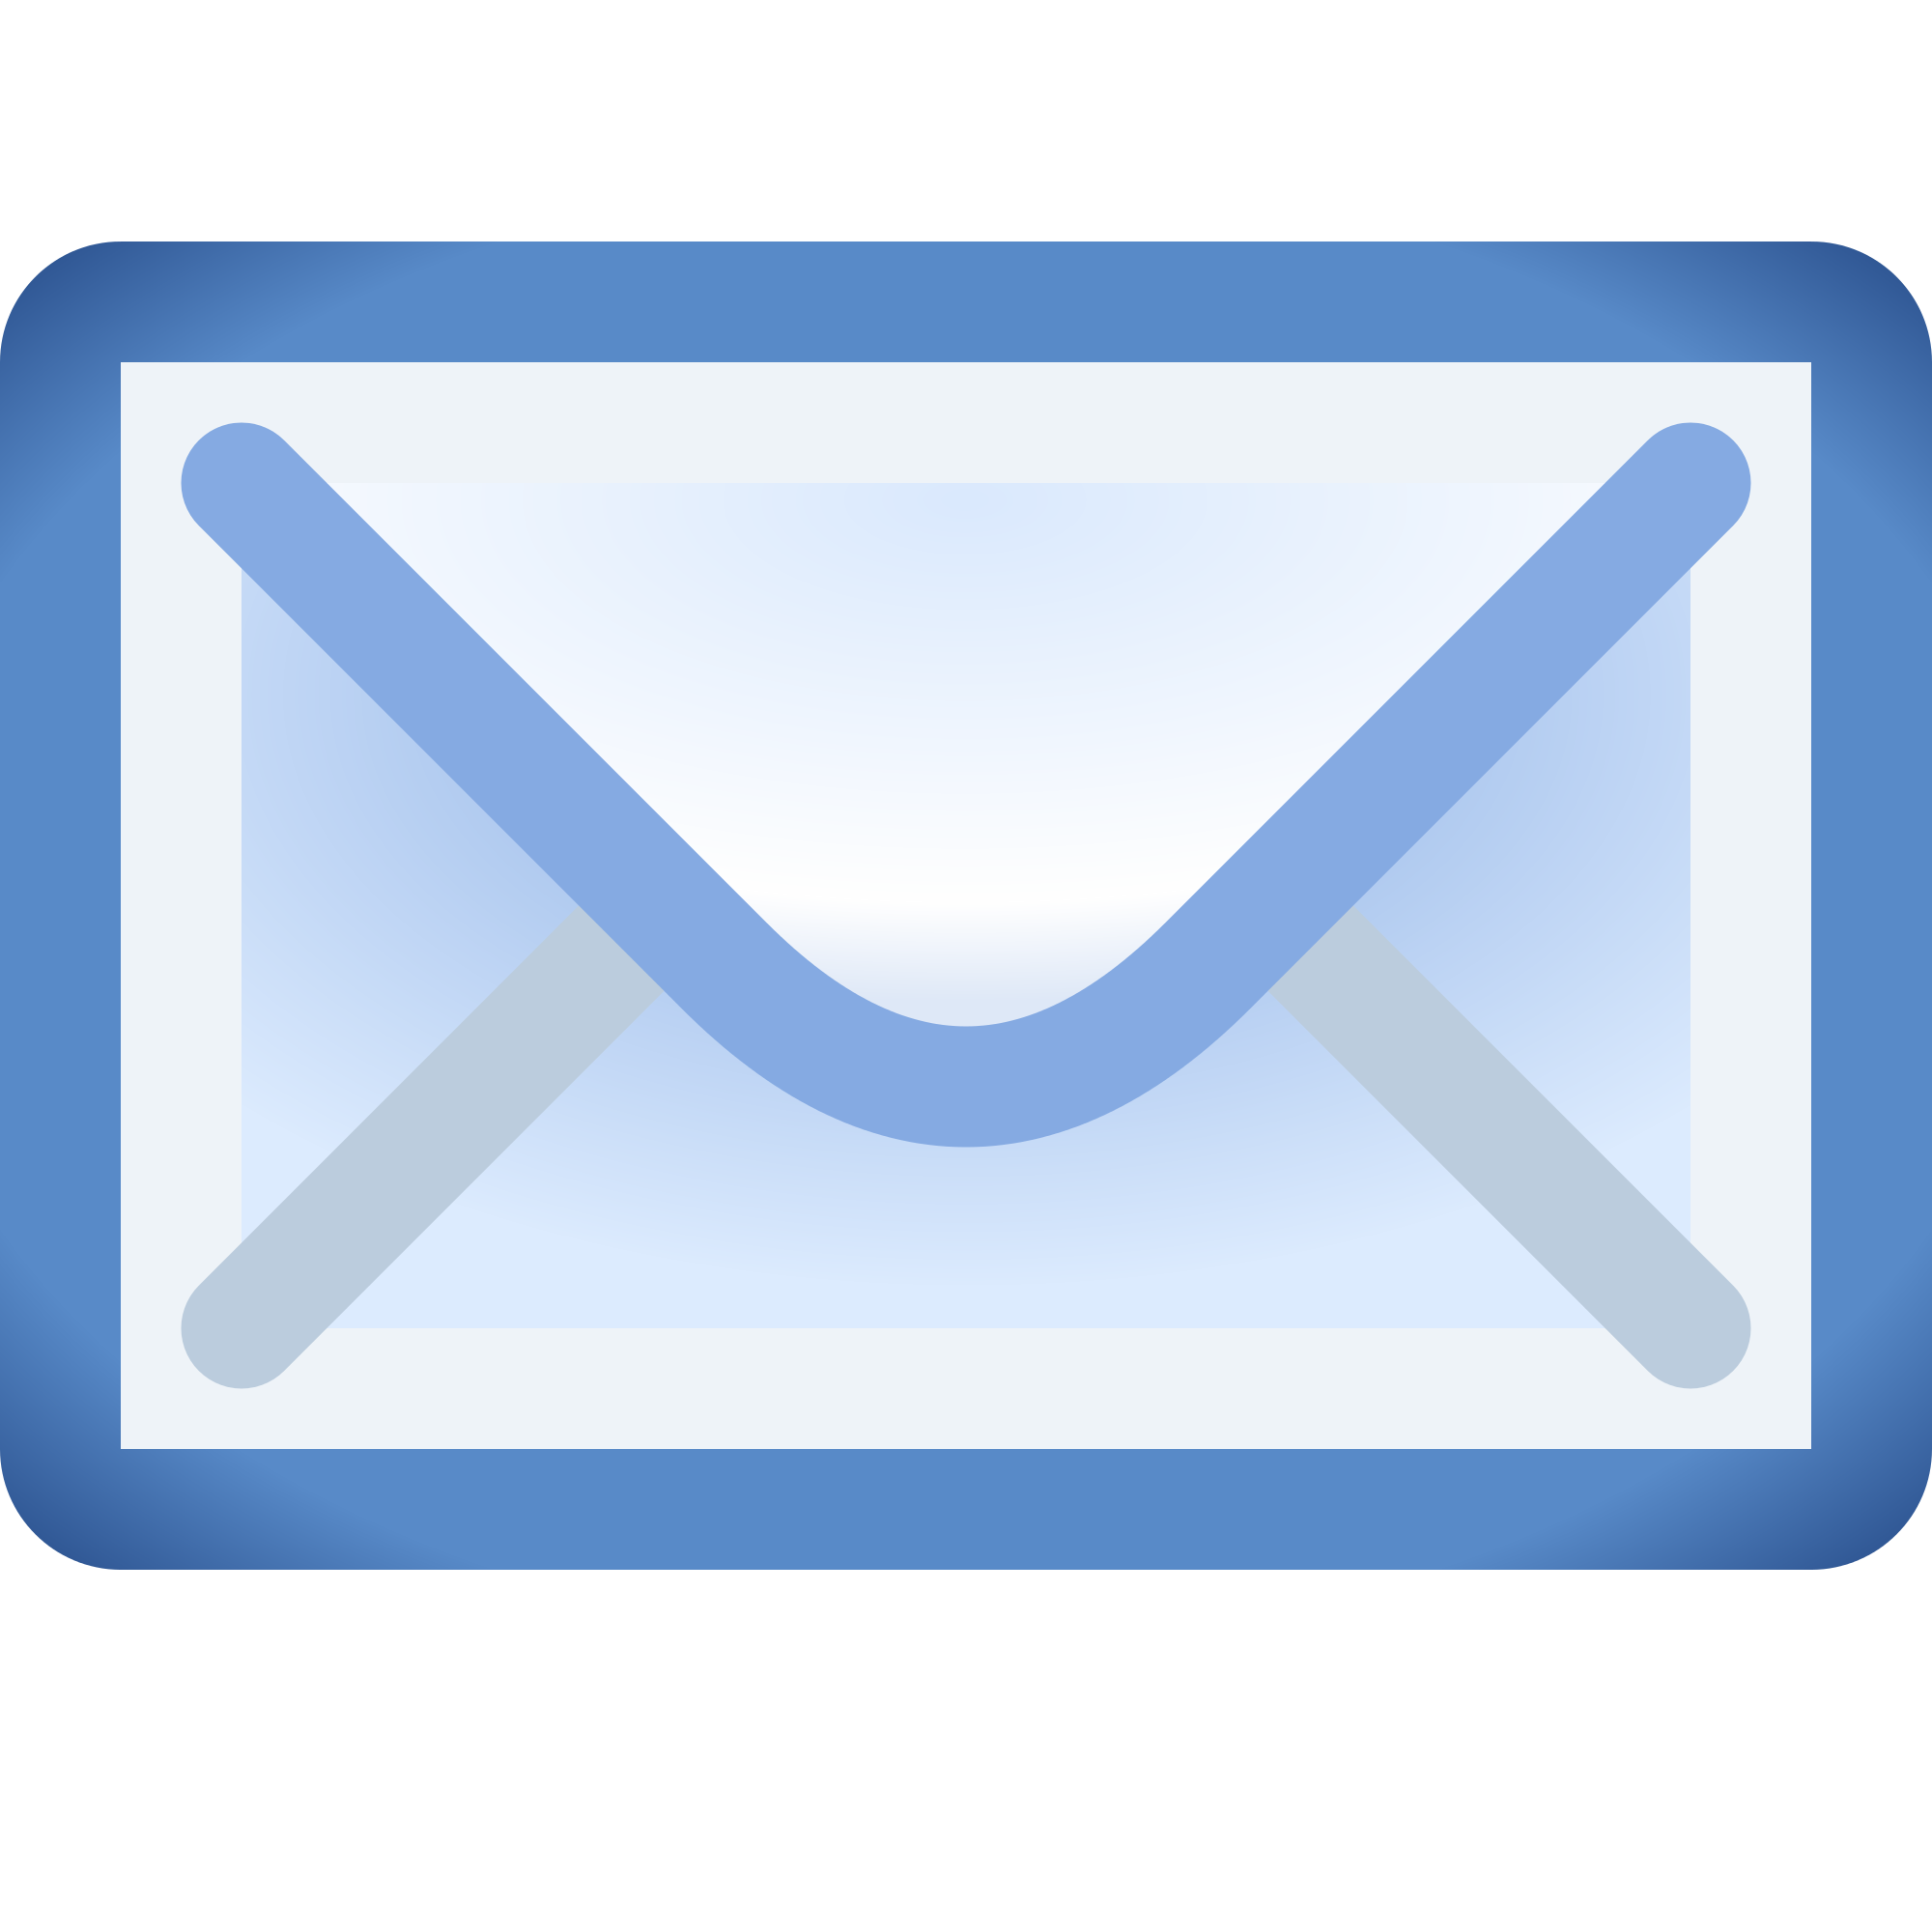 Email svg. File silk wikimedia commons